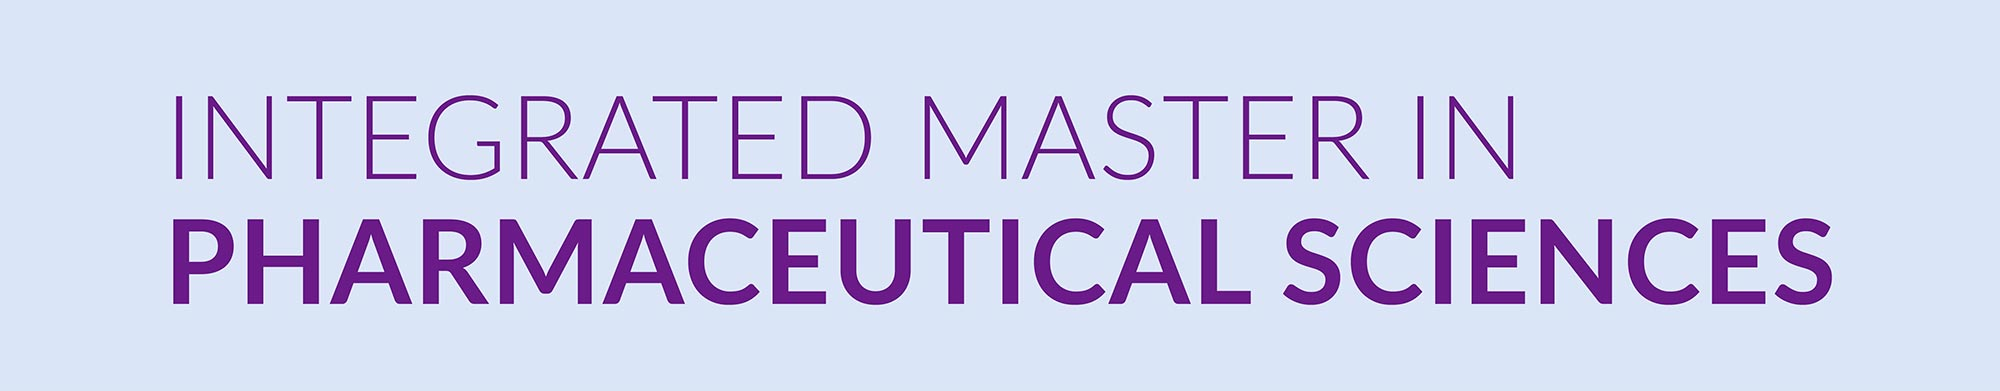 Integrated Master Degree on Pharmaceutical Sciences